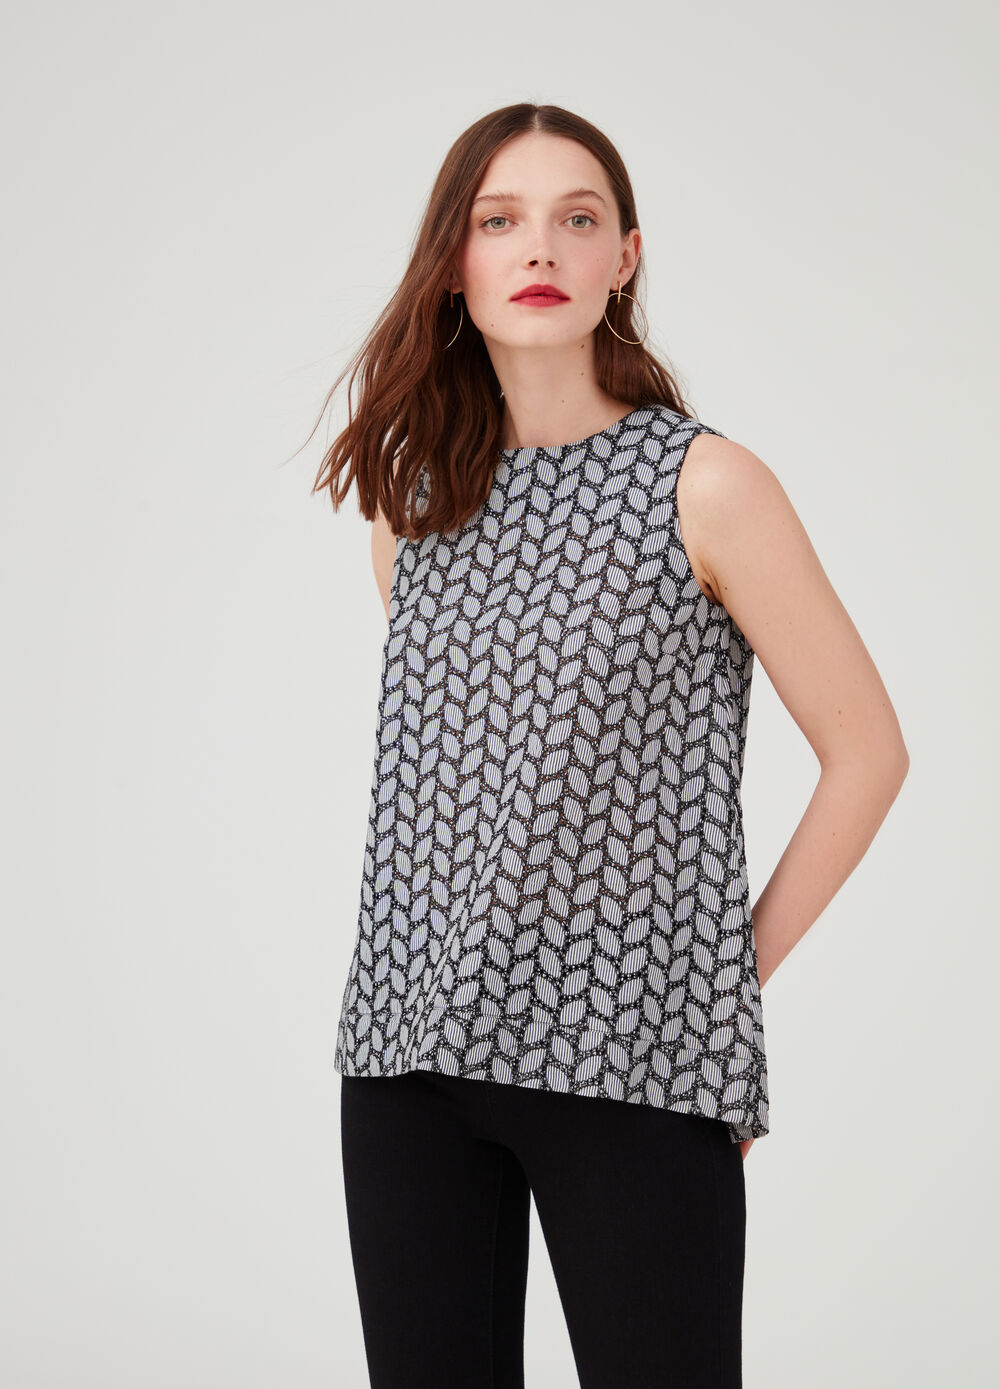 Sleeveless blouse with geometric pattern